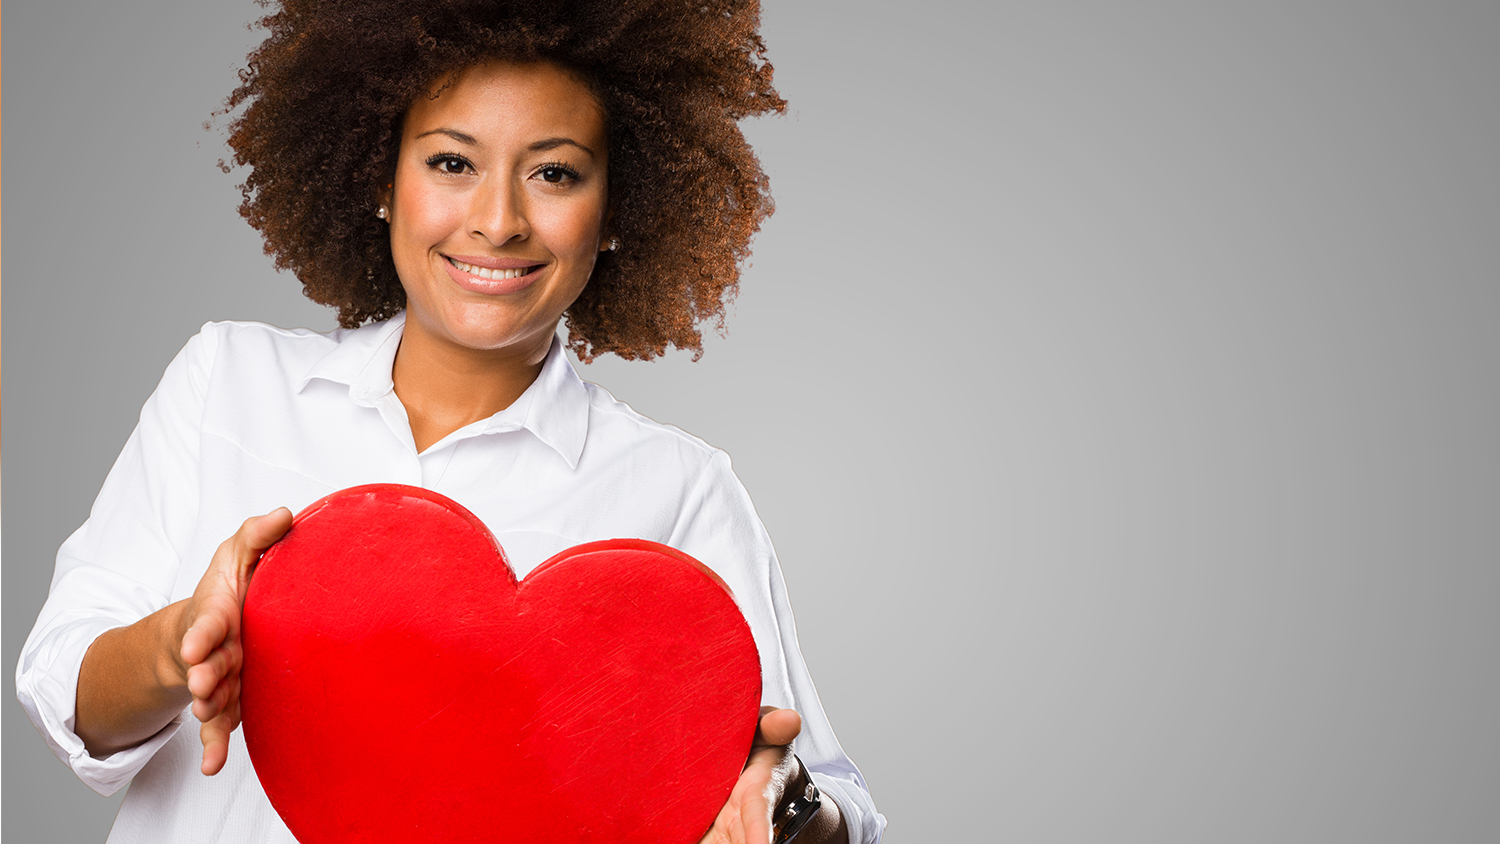 Woman holding large red heart